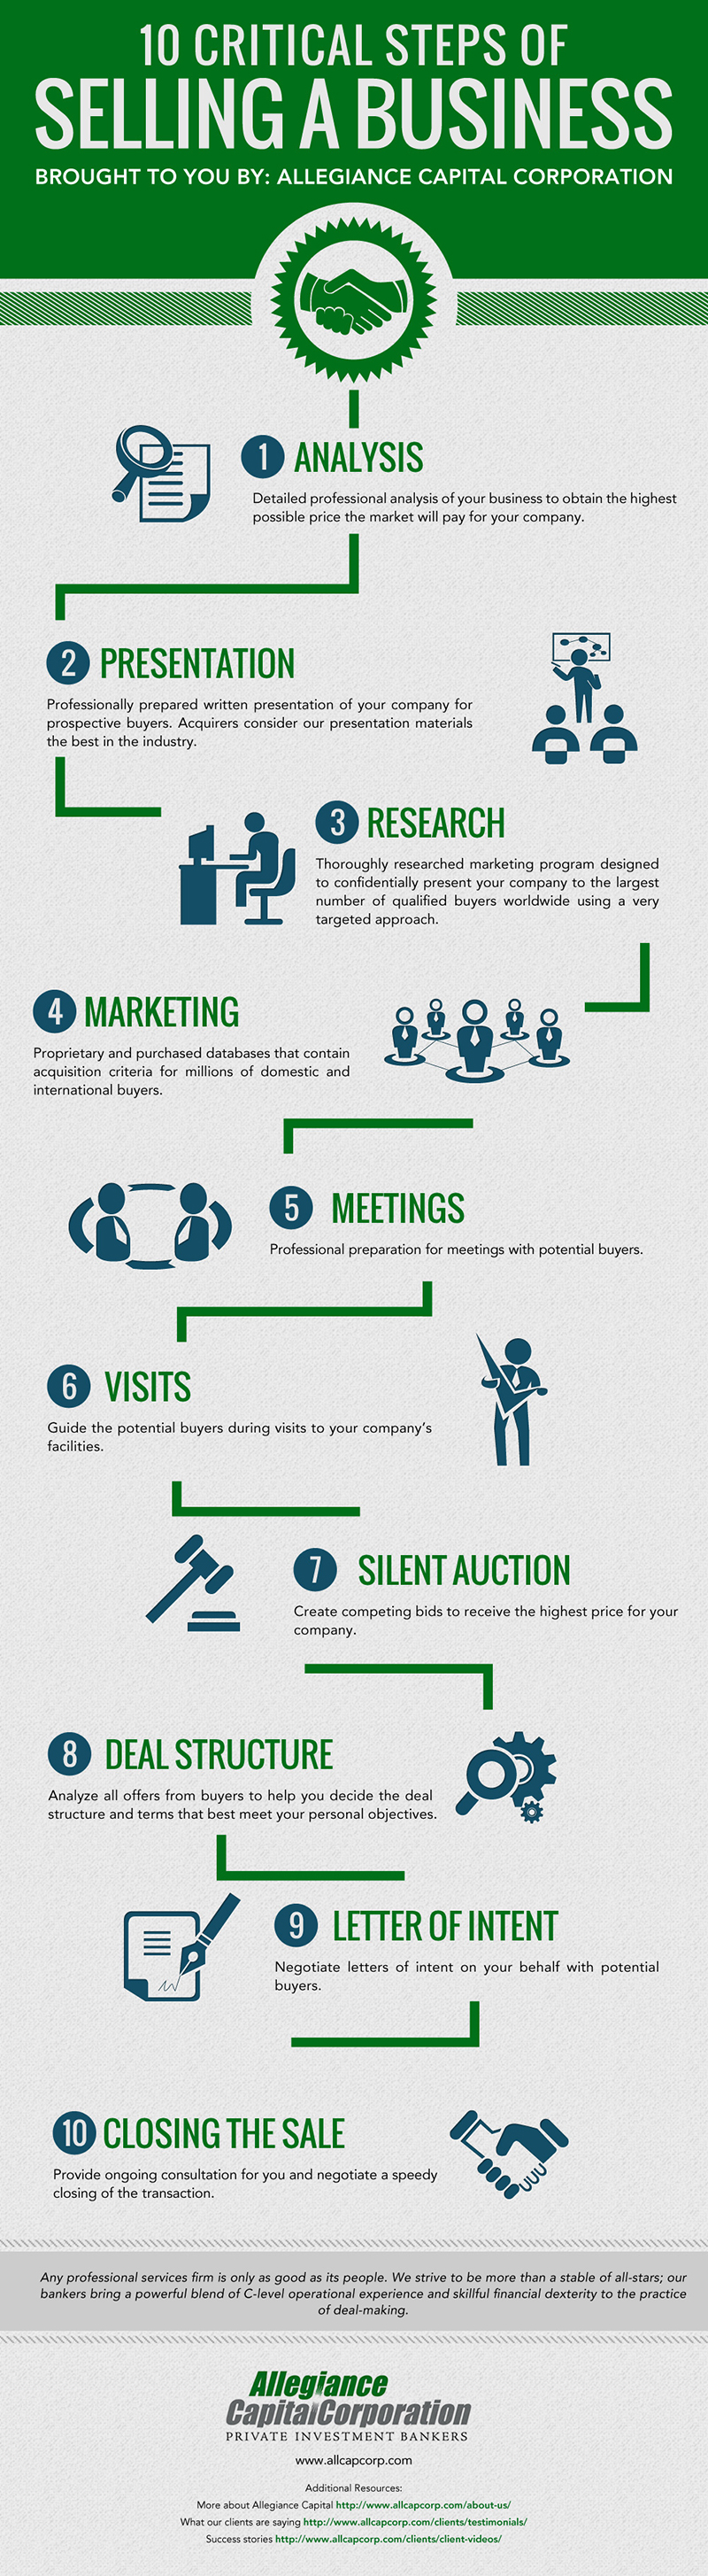 10 Critical Steps of Selling a Business